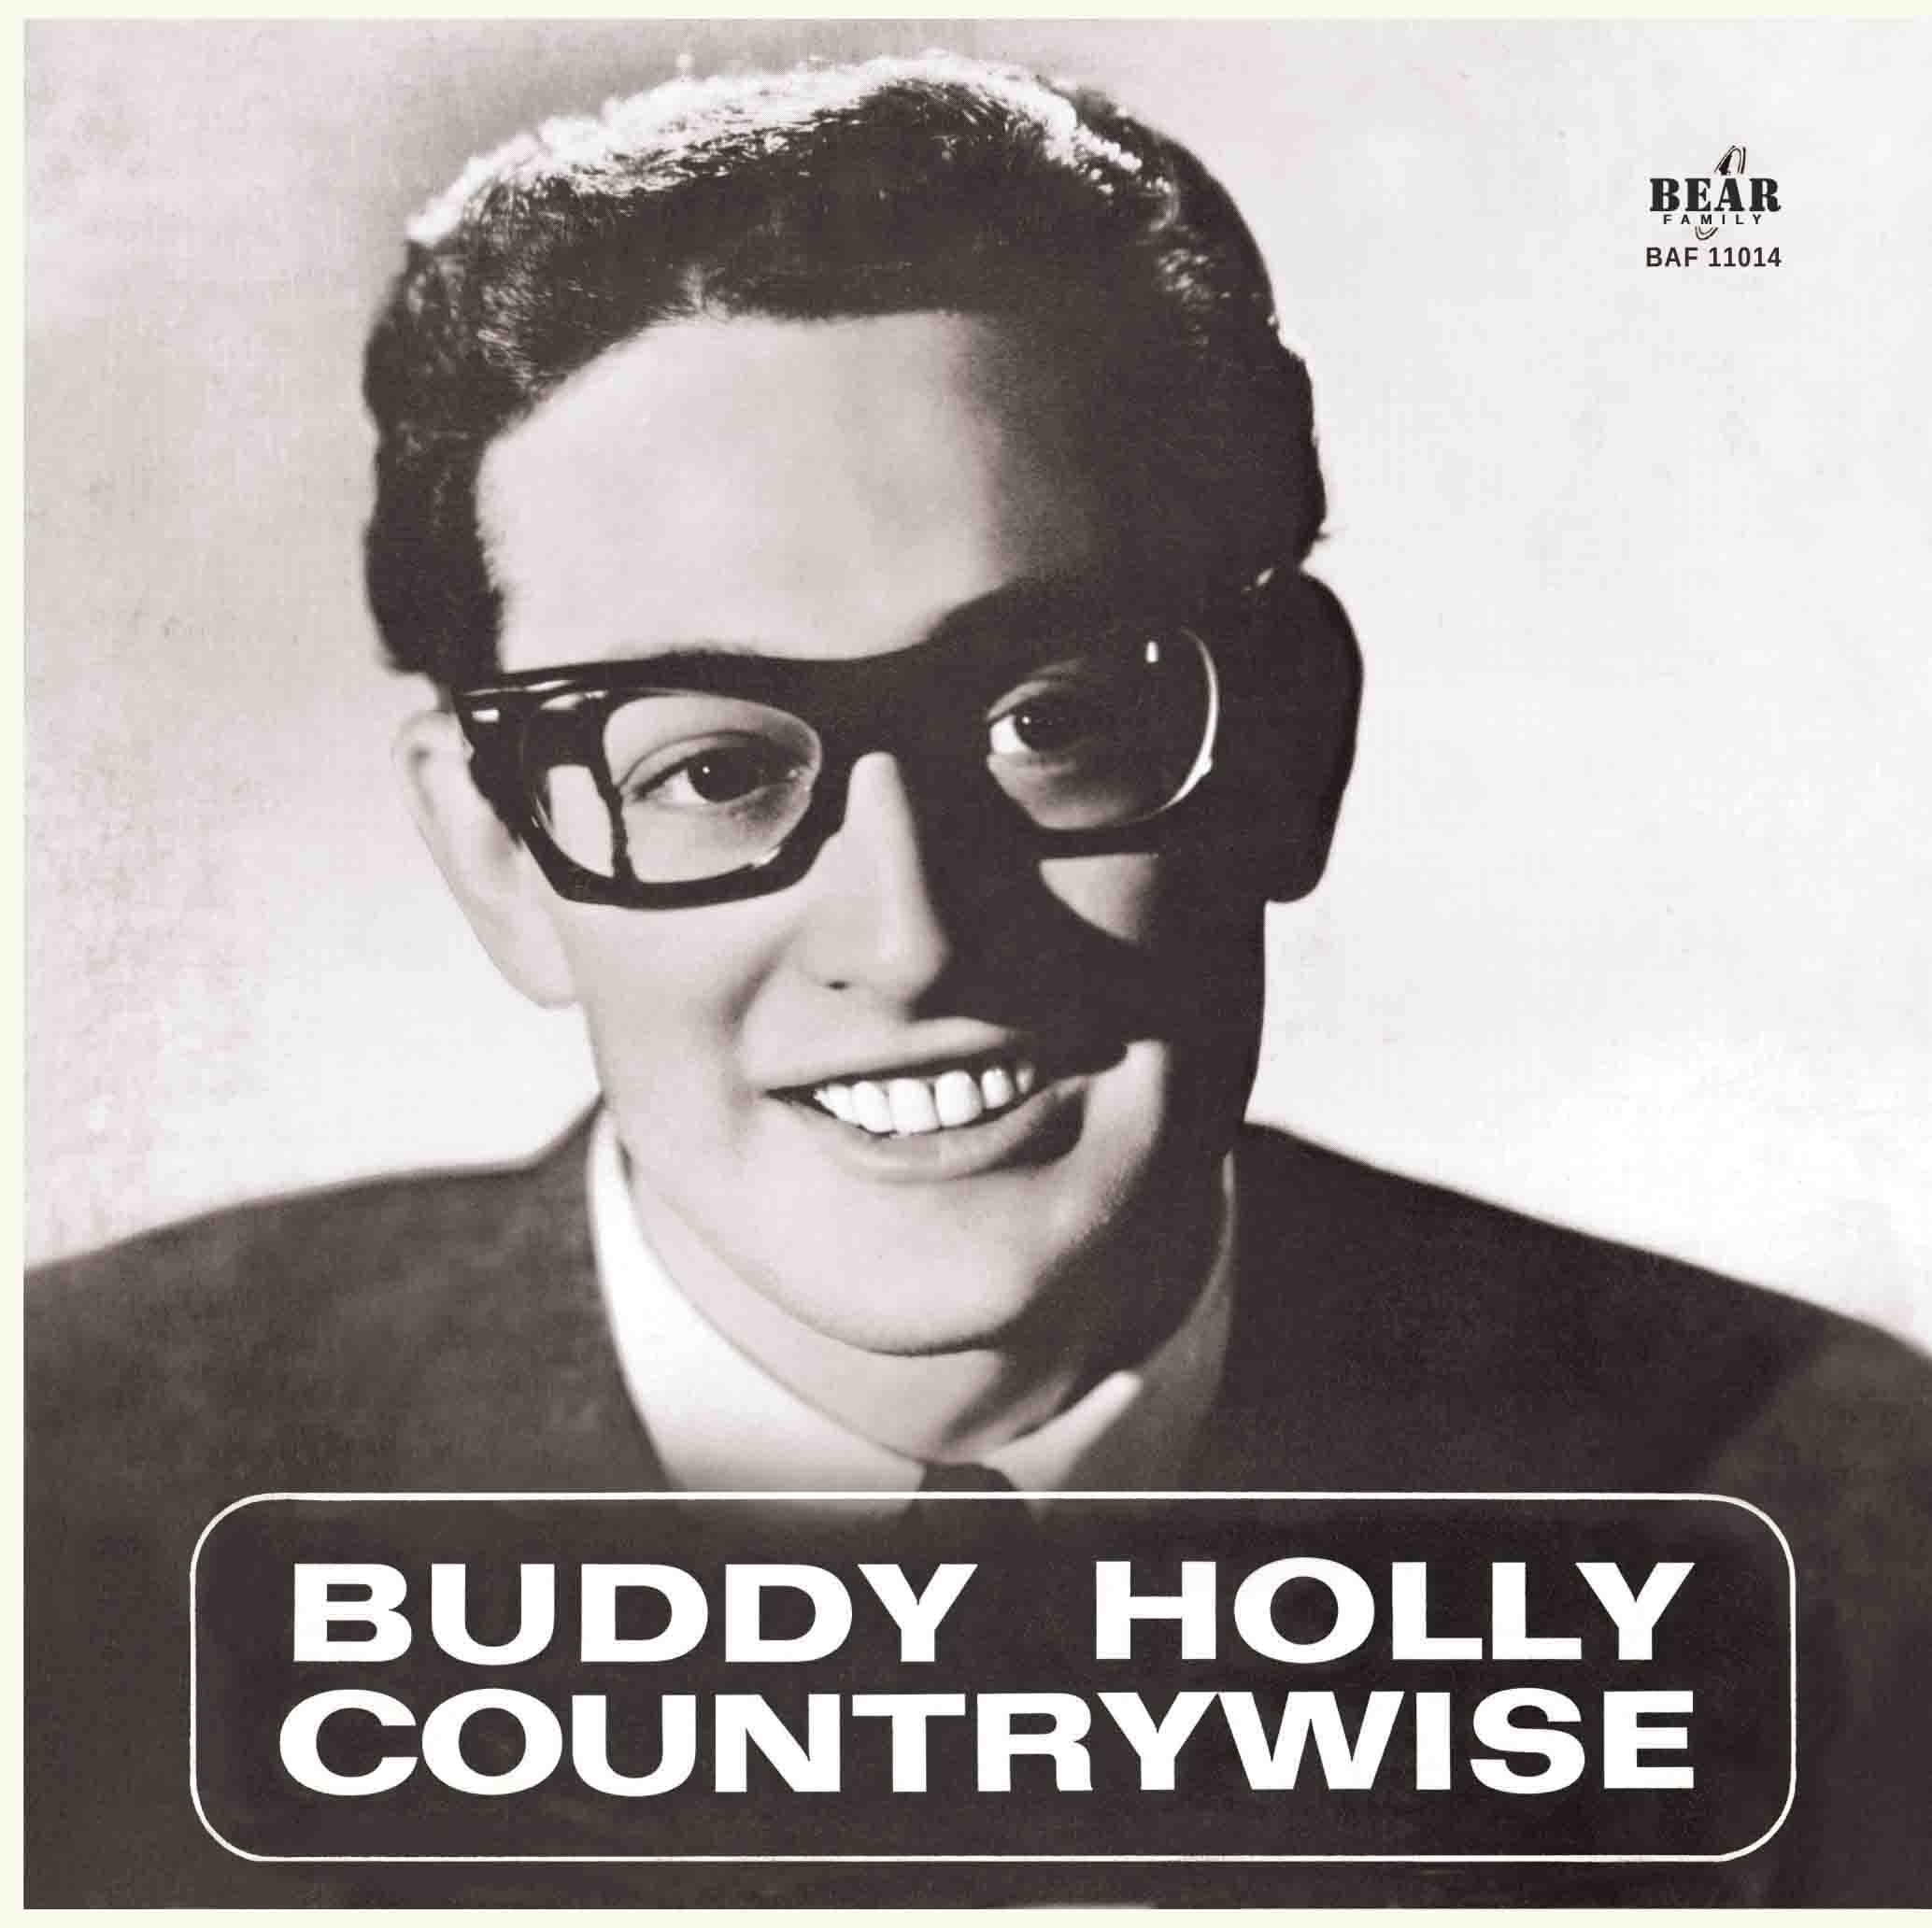 ba88f0fe8801 Buddy Holly LP (10 inch)  Countrywise (LP